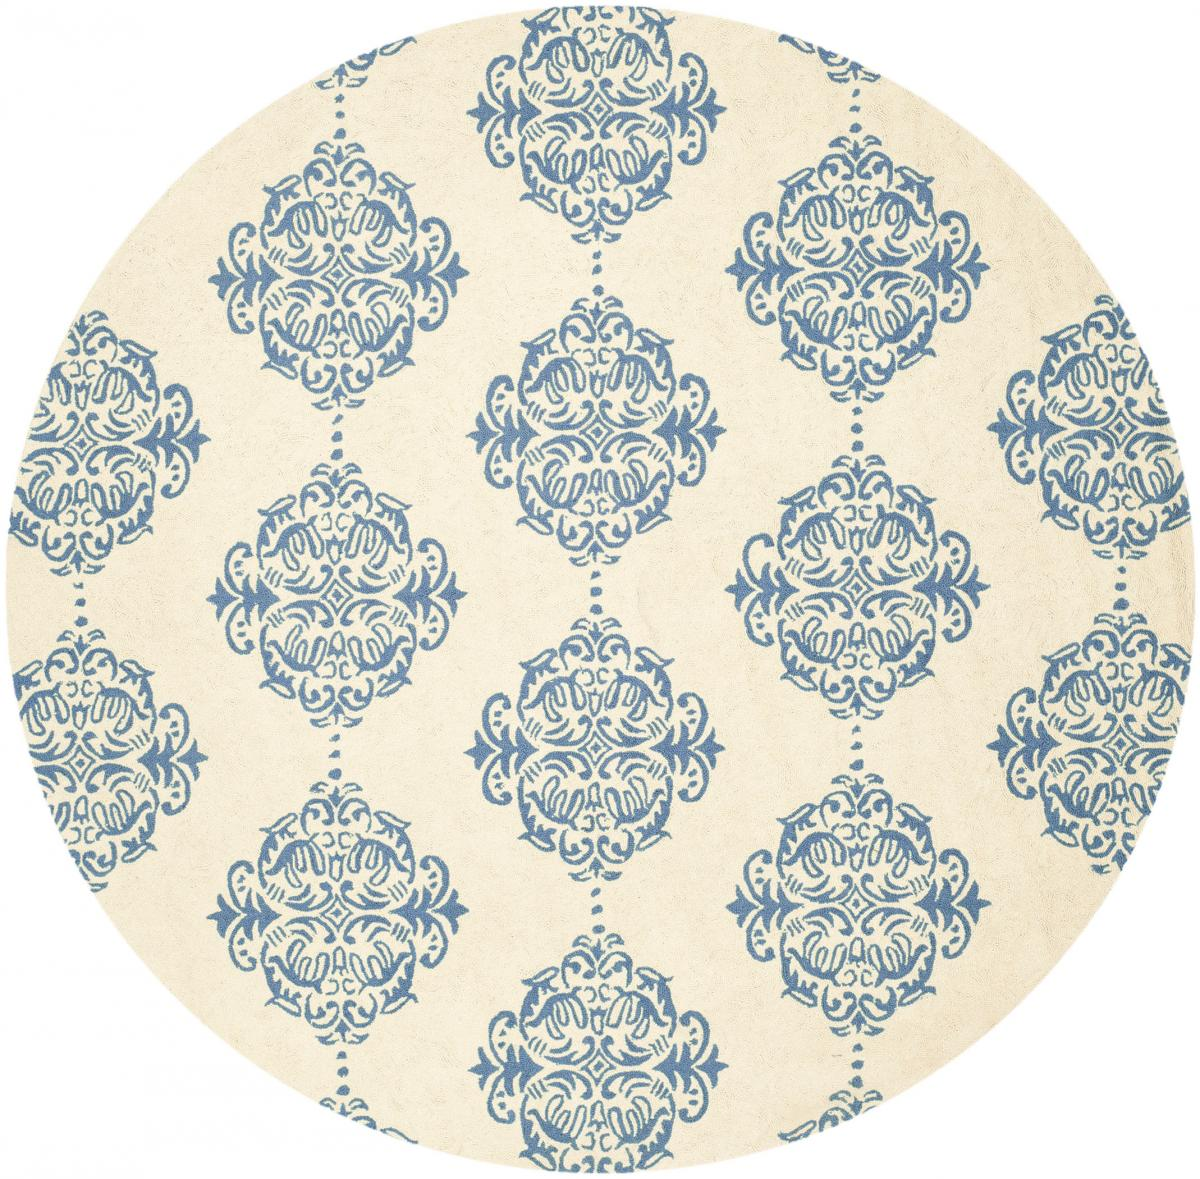 Rug Hk145a Chelsea Area Rugs By Safavieh